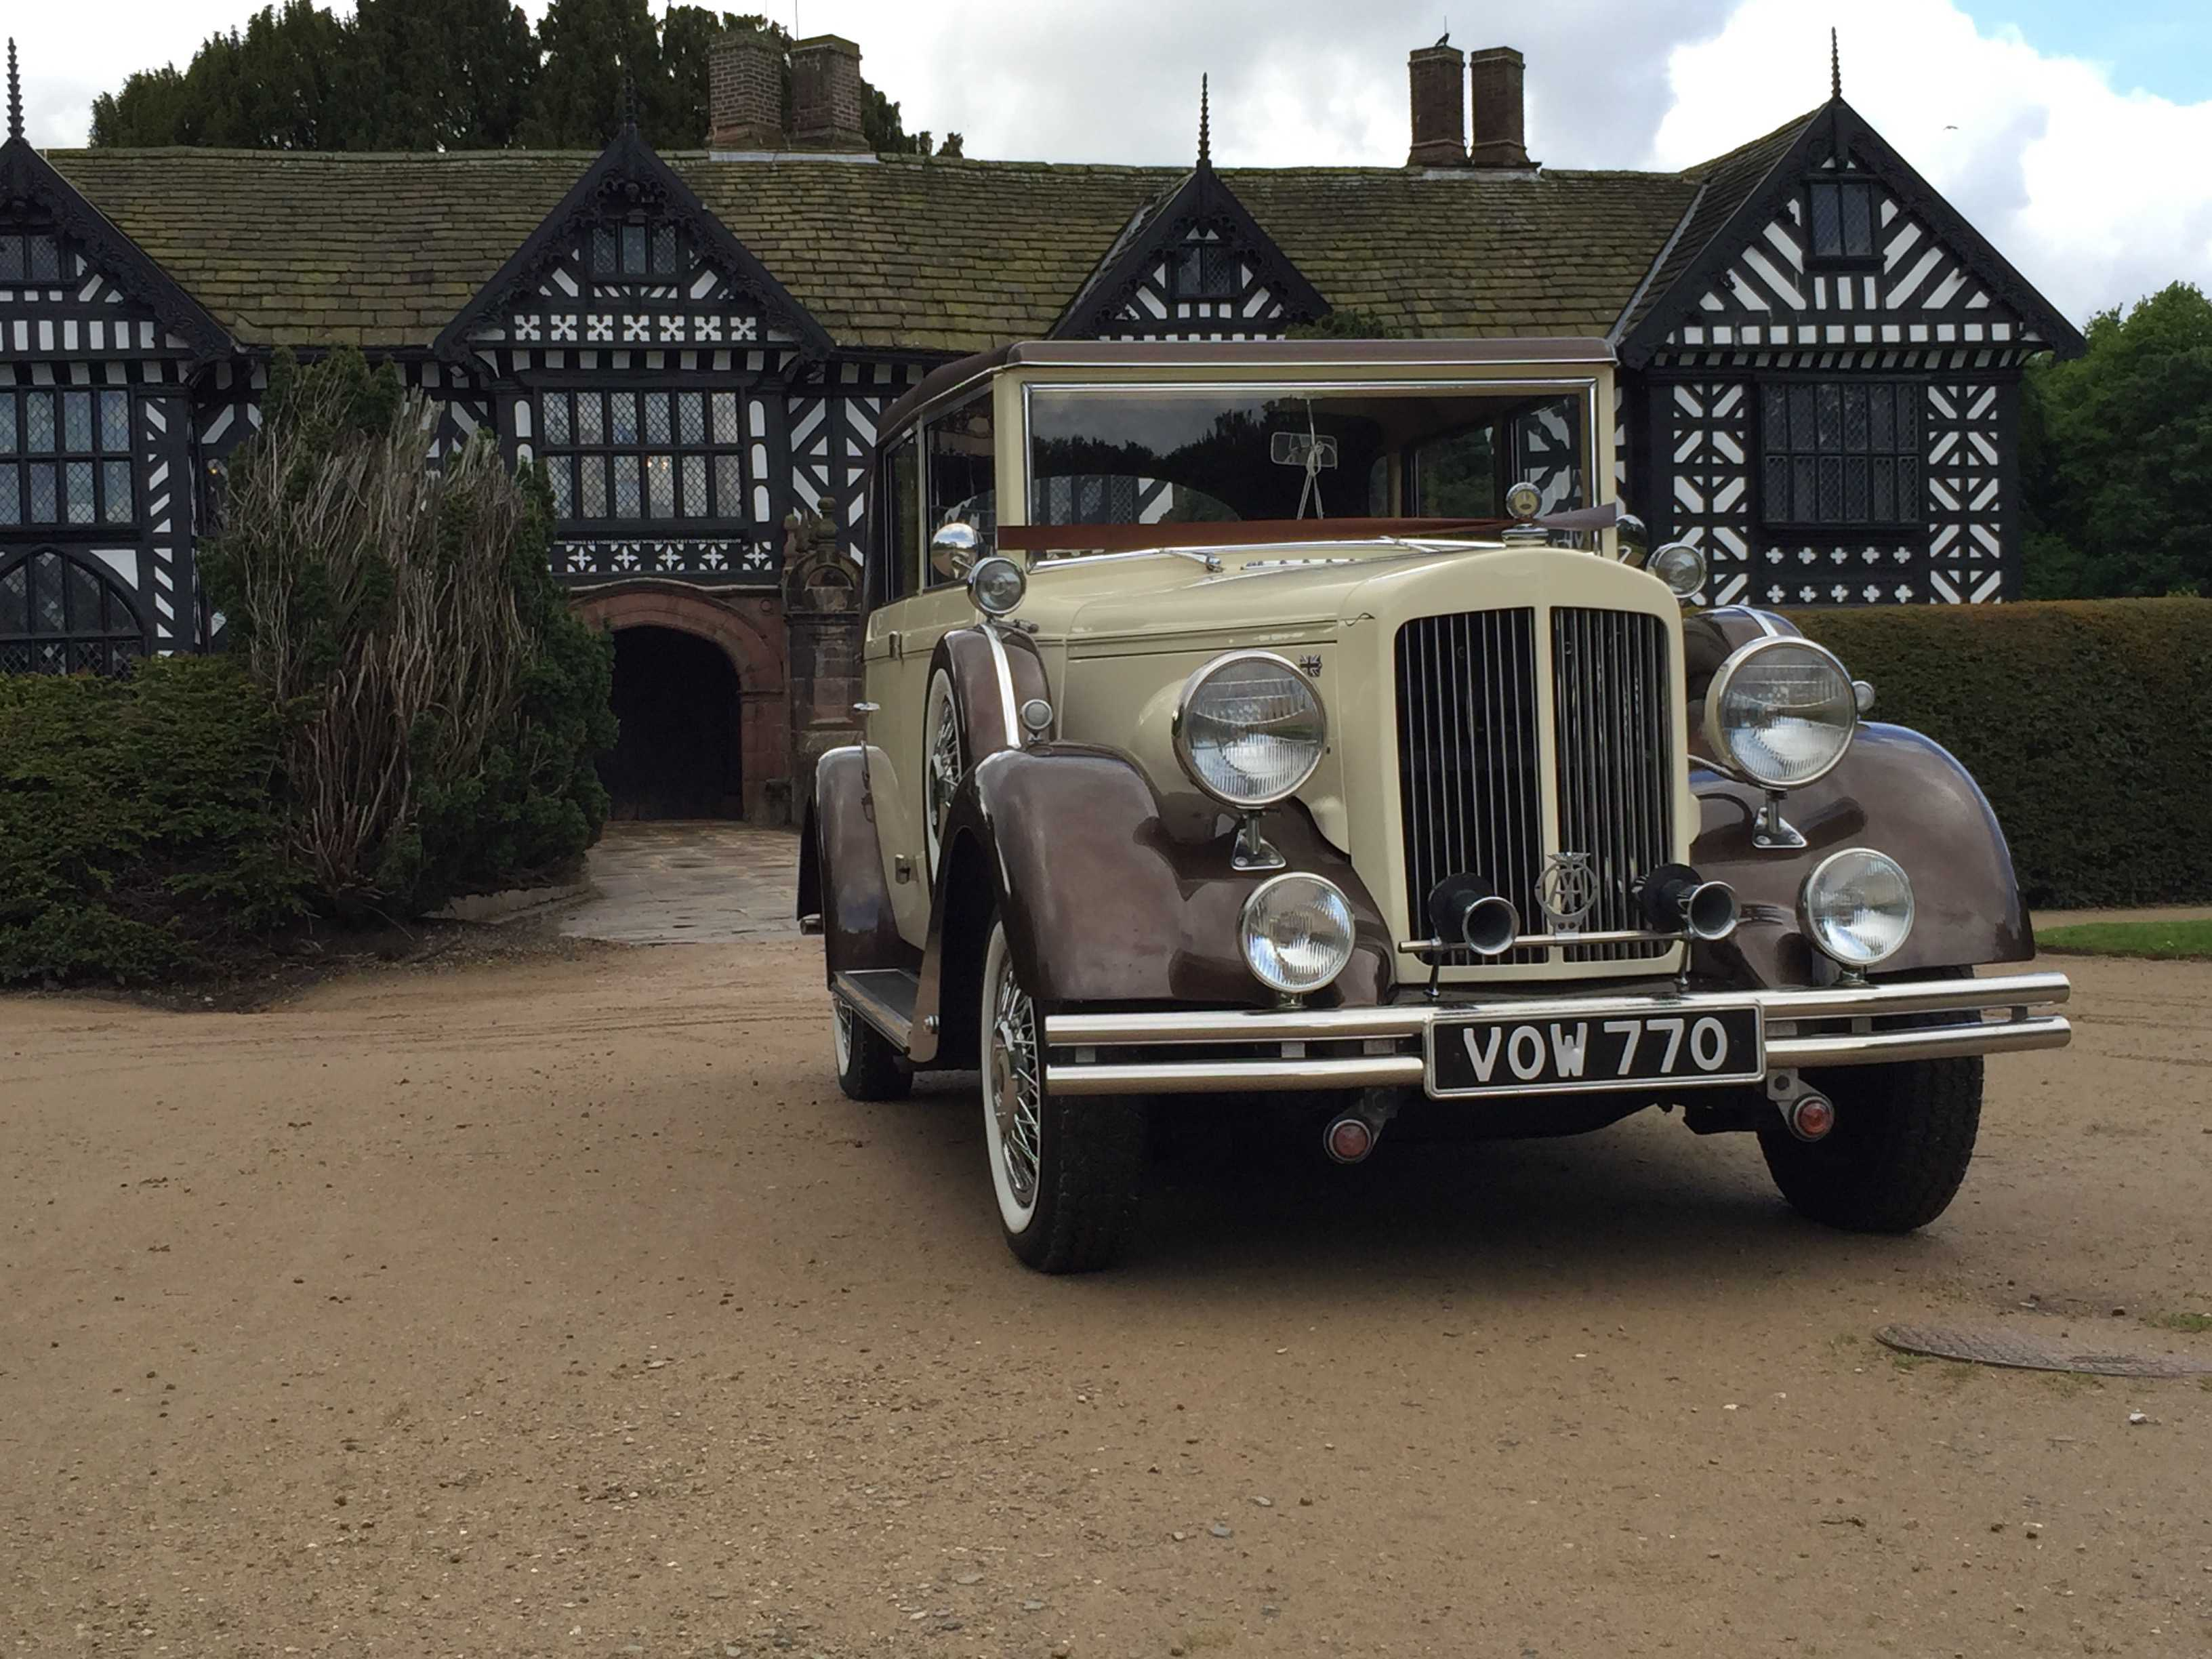 Front view of a wedding vintage car